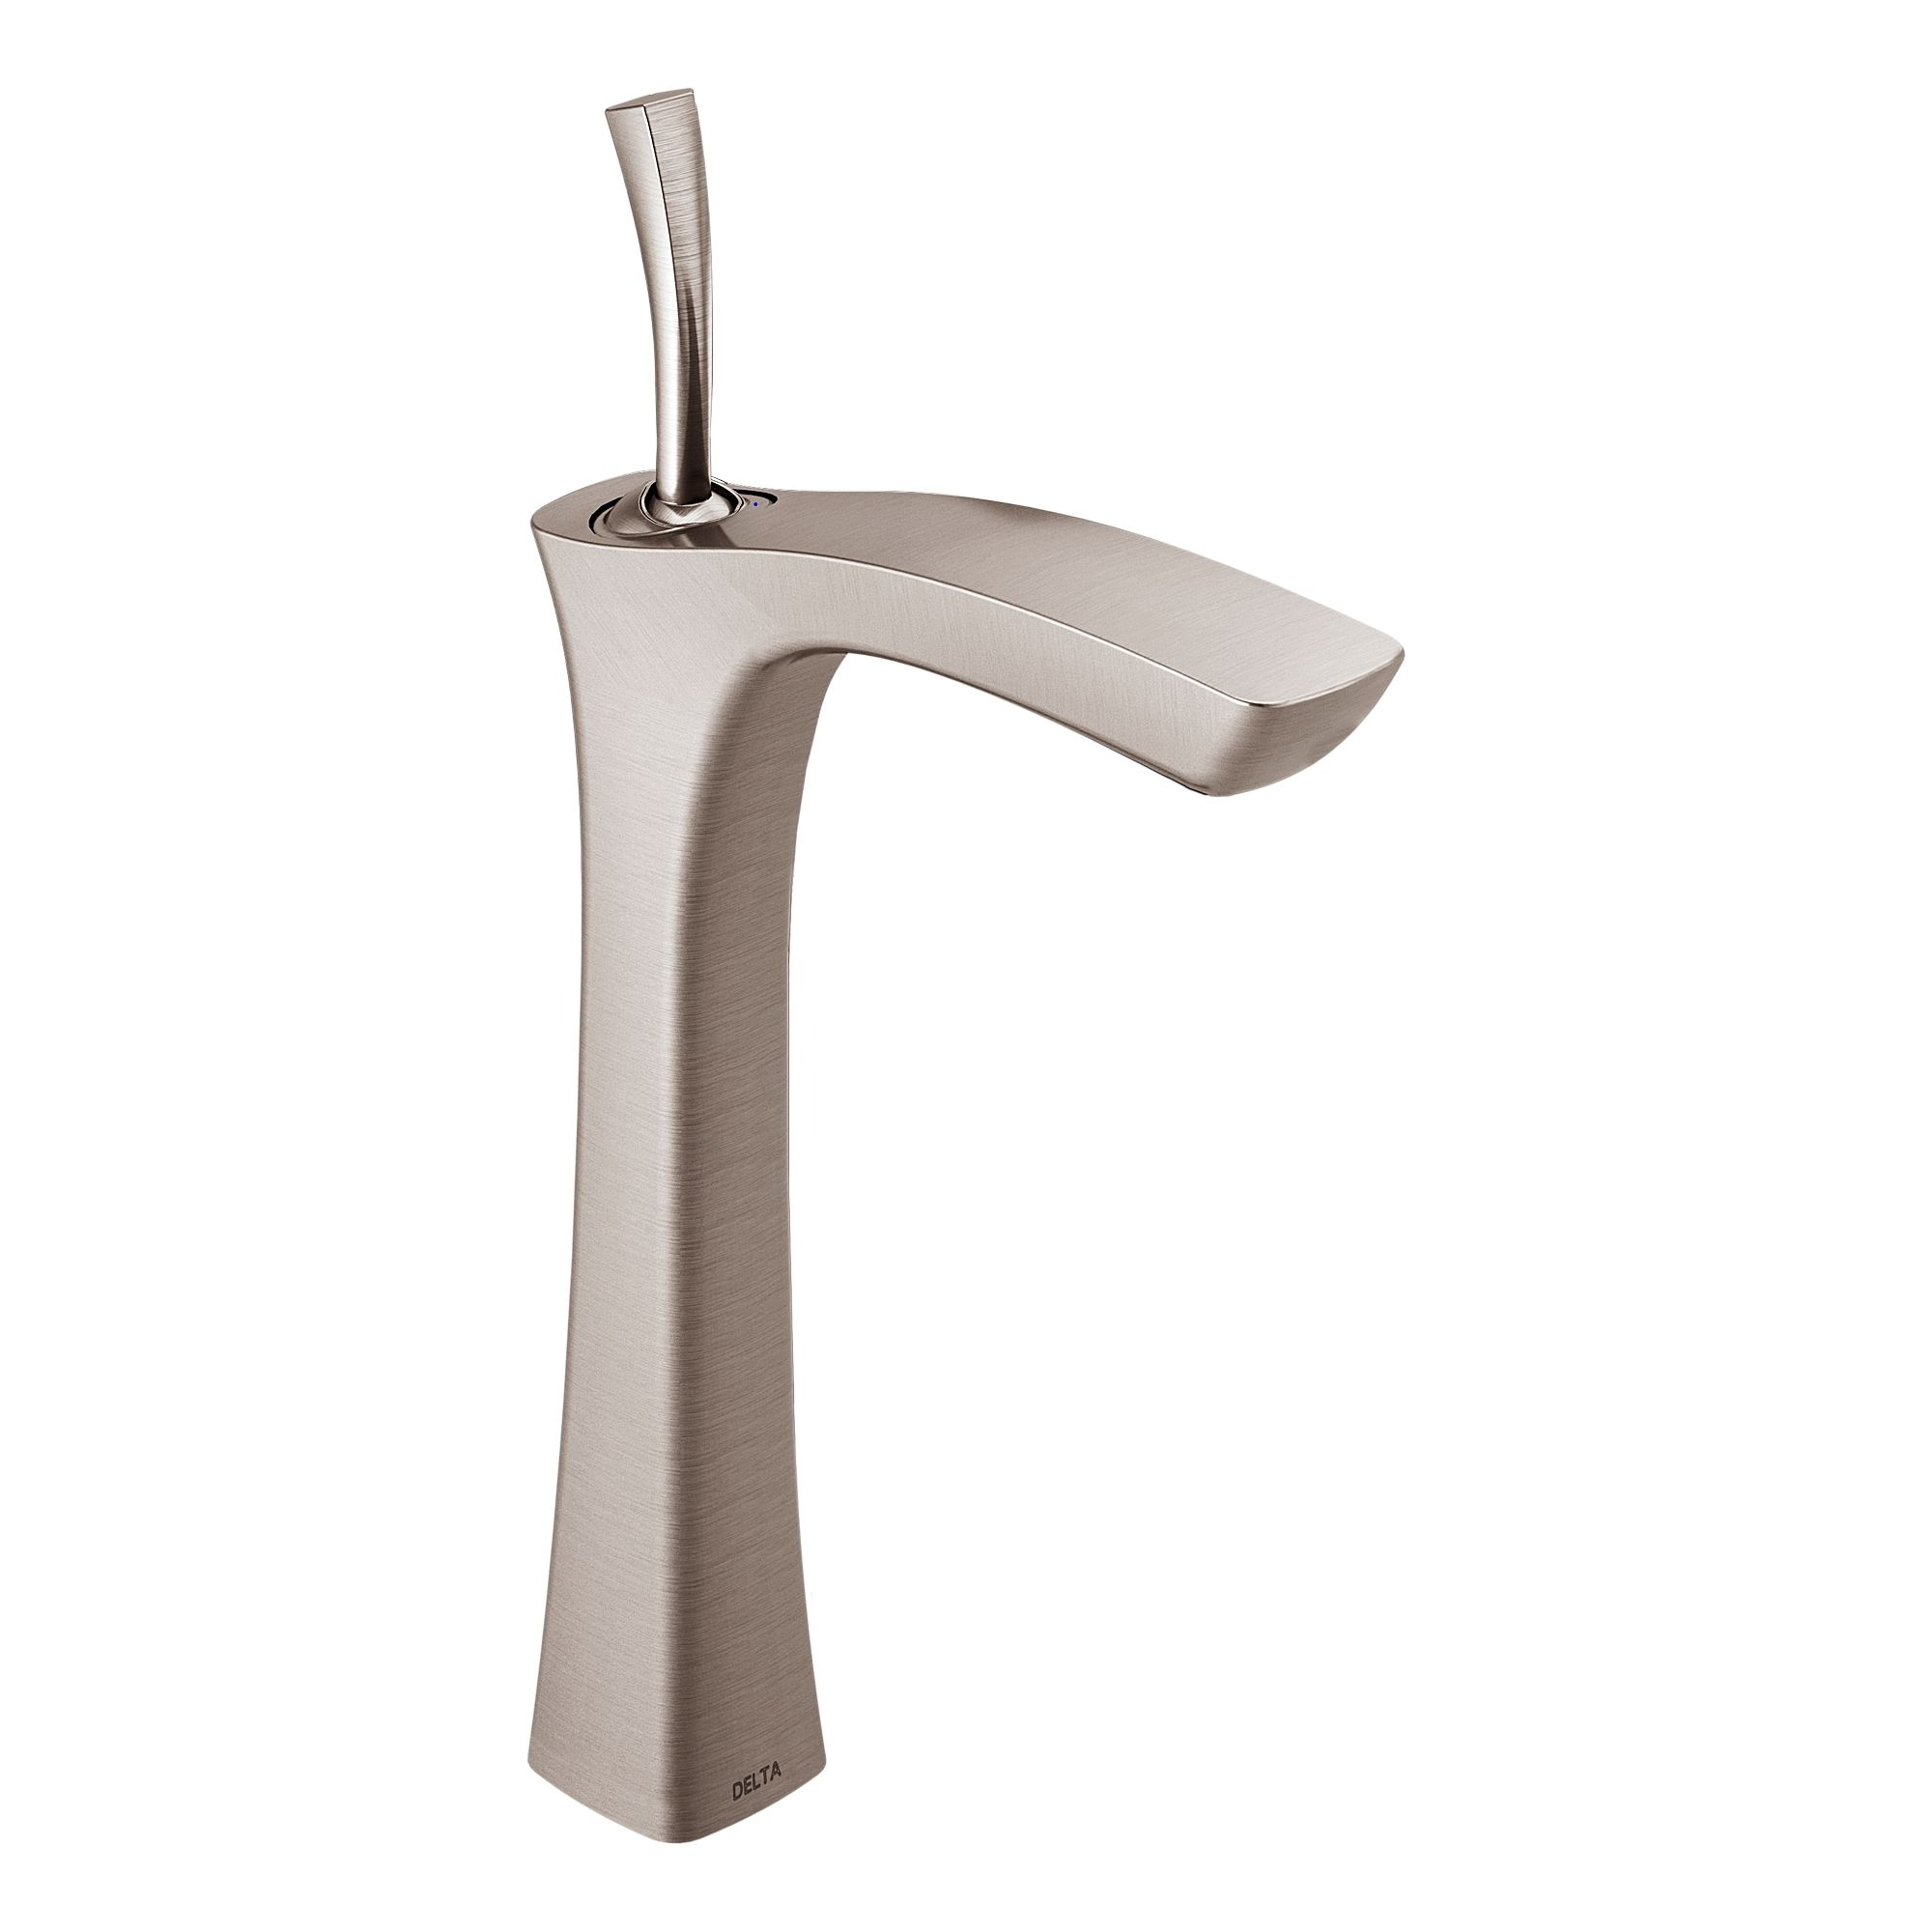 Delta 752LF SS Brilliance Stainless Tesla Vessel Bathroom Faucet   Includes  Lifetime Warranty   Less Drain Assembly   Faucet.com